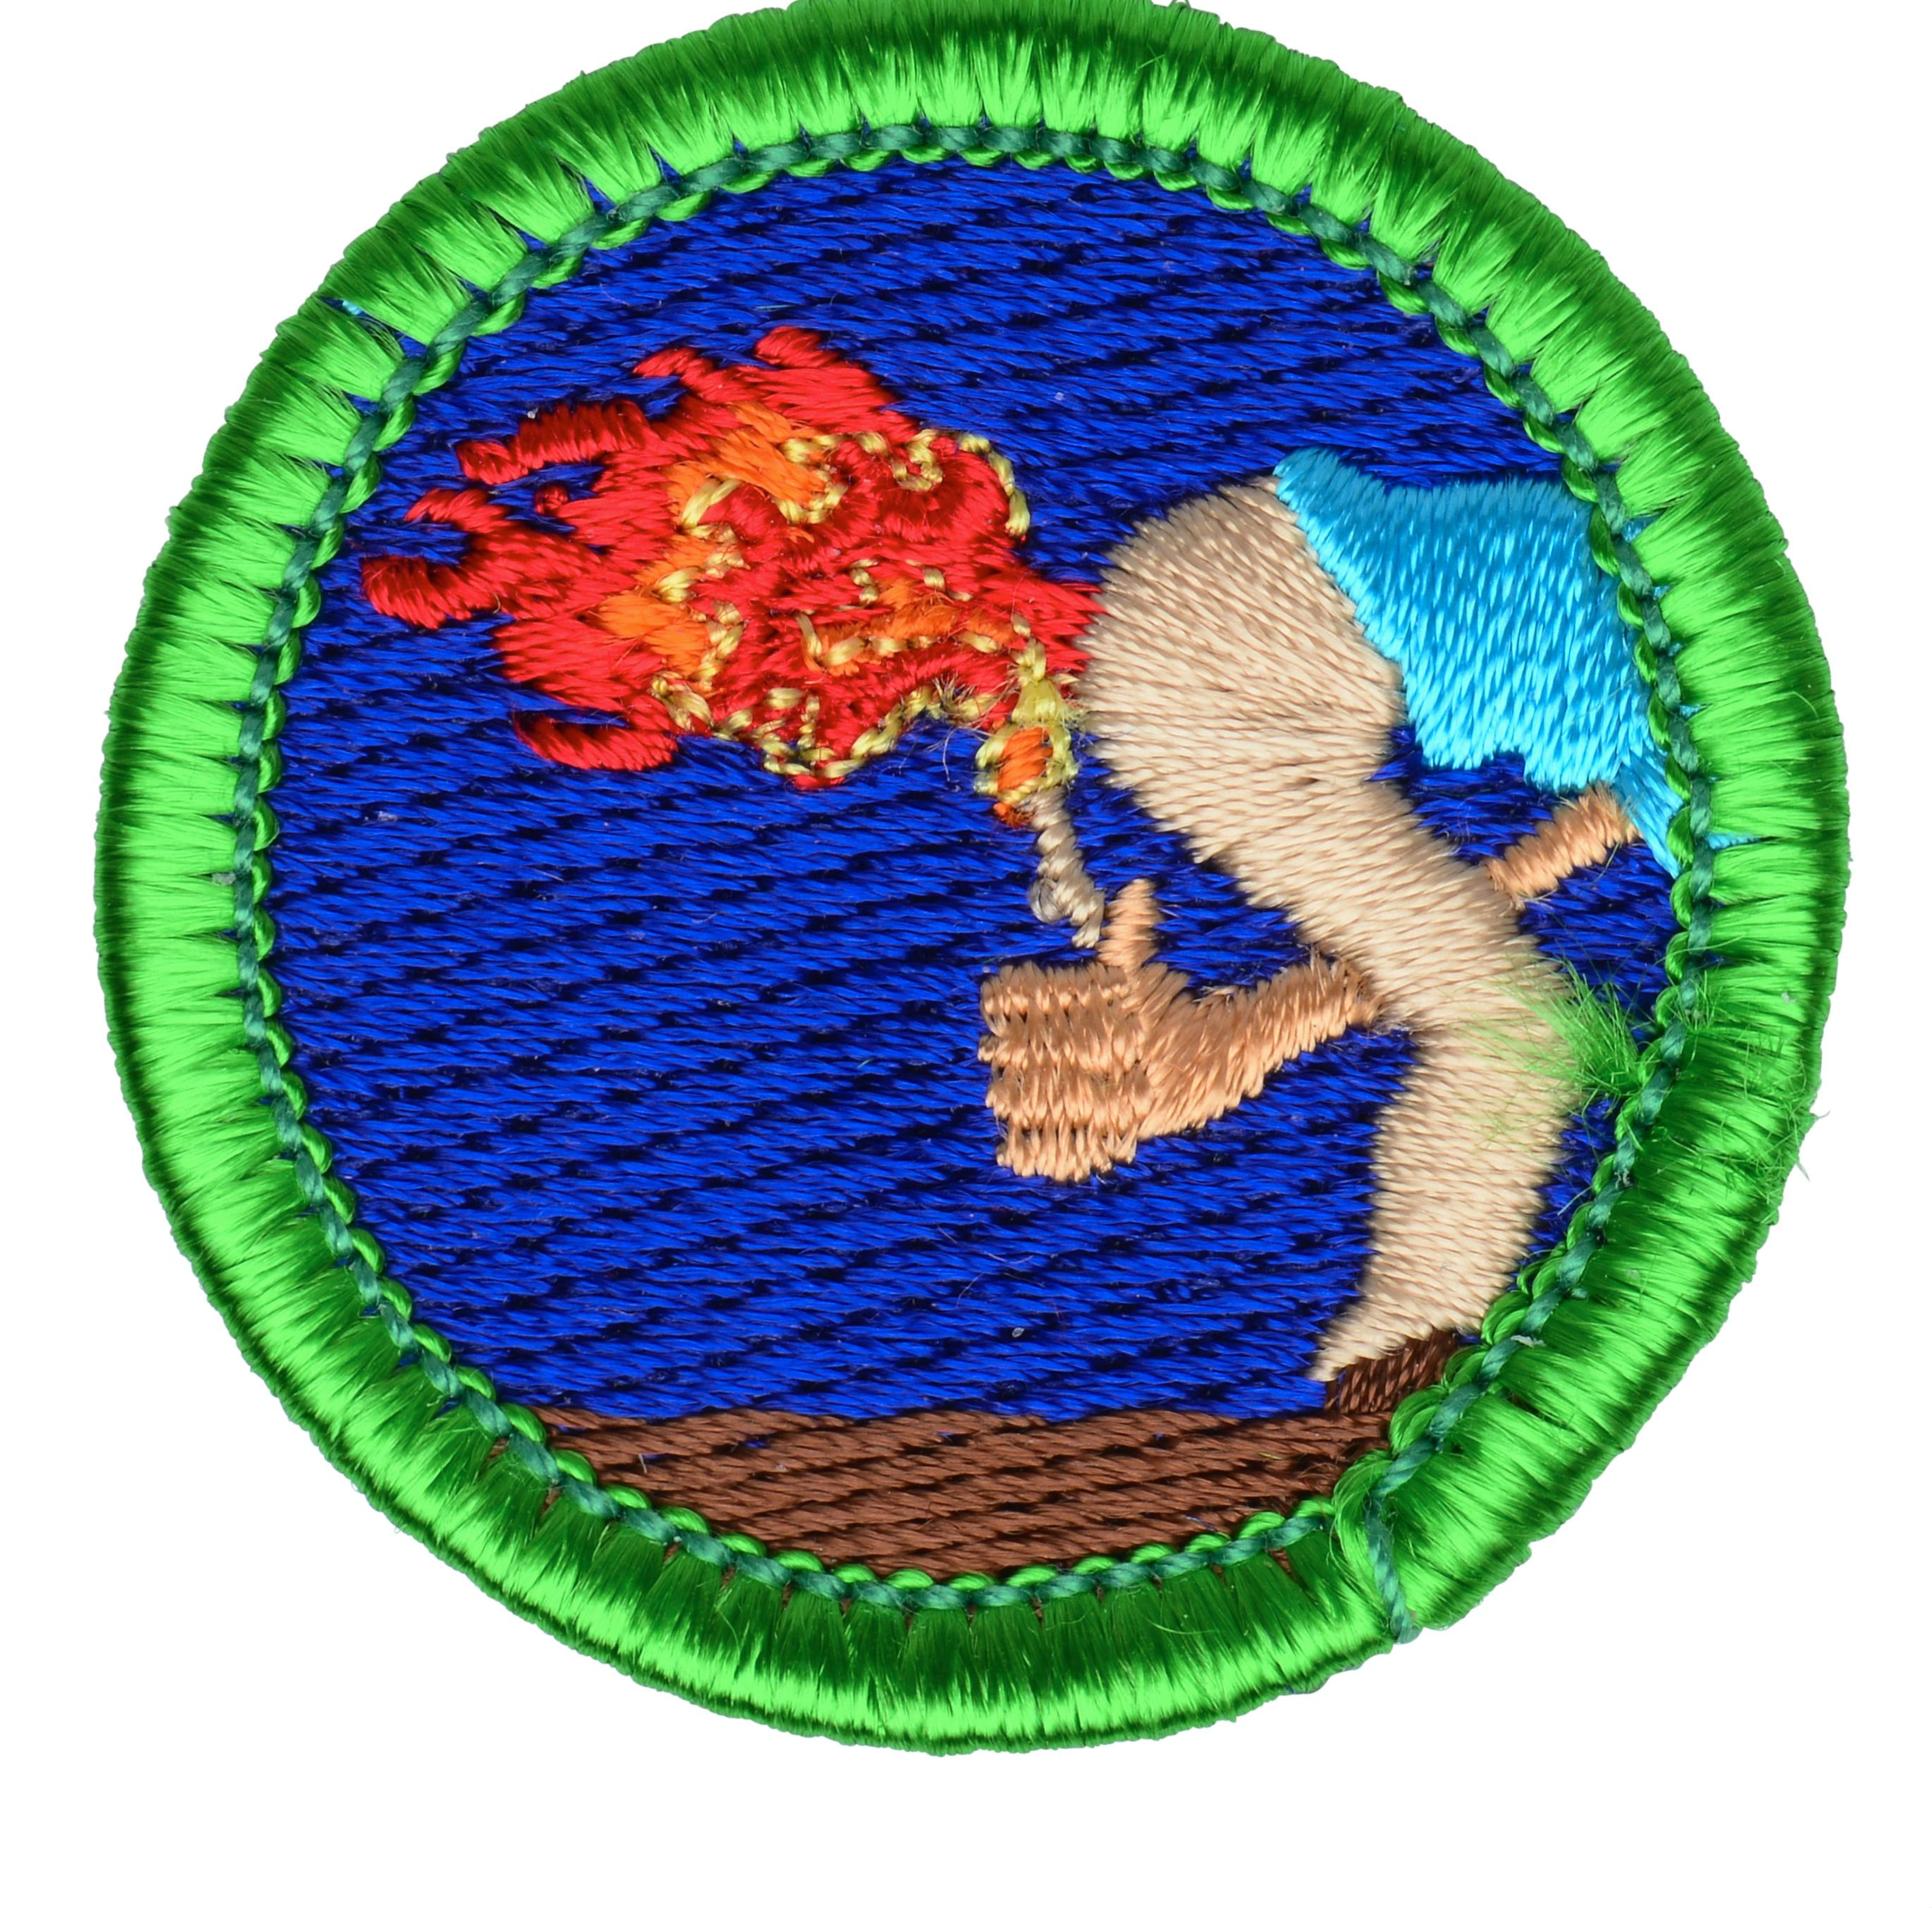 Spoof Merit Badges are a great way to add a little more fun to your  Scouting. Your scouts will appreciate the